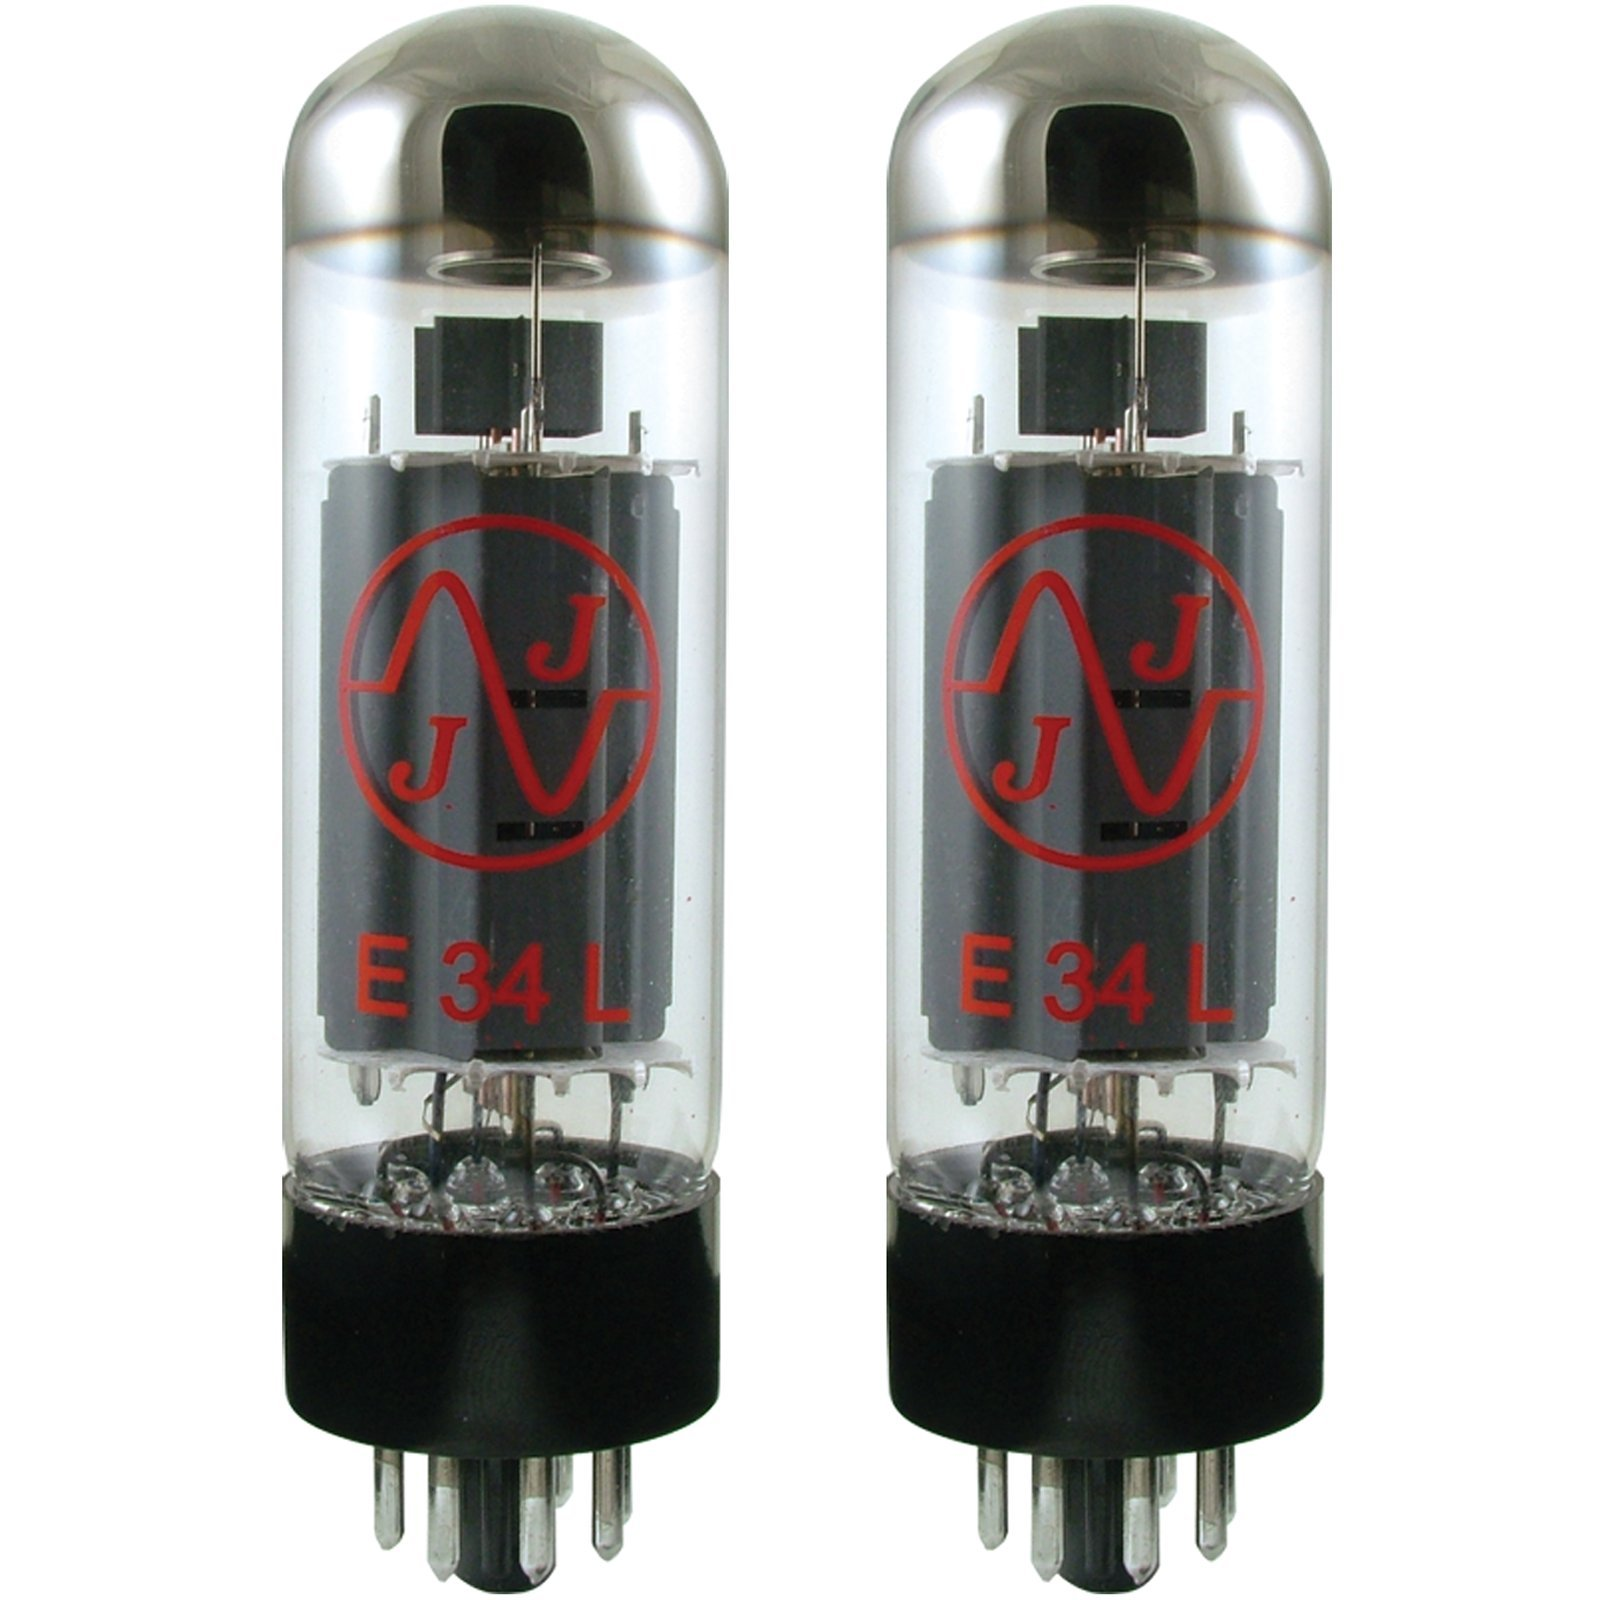 JJ Electronics T-E34L-JJ-MP Vacuum Tube Pentode Matched Pair